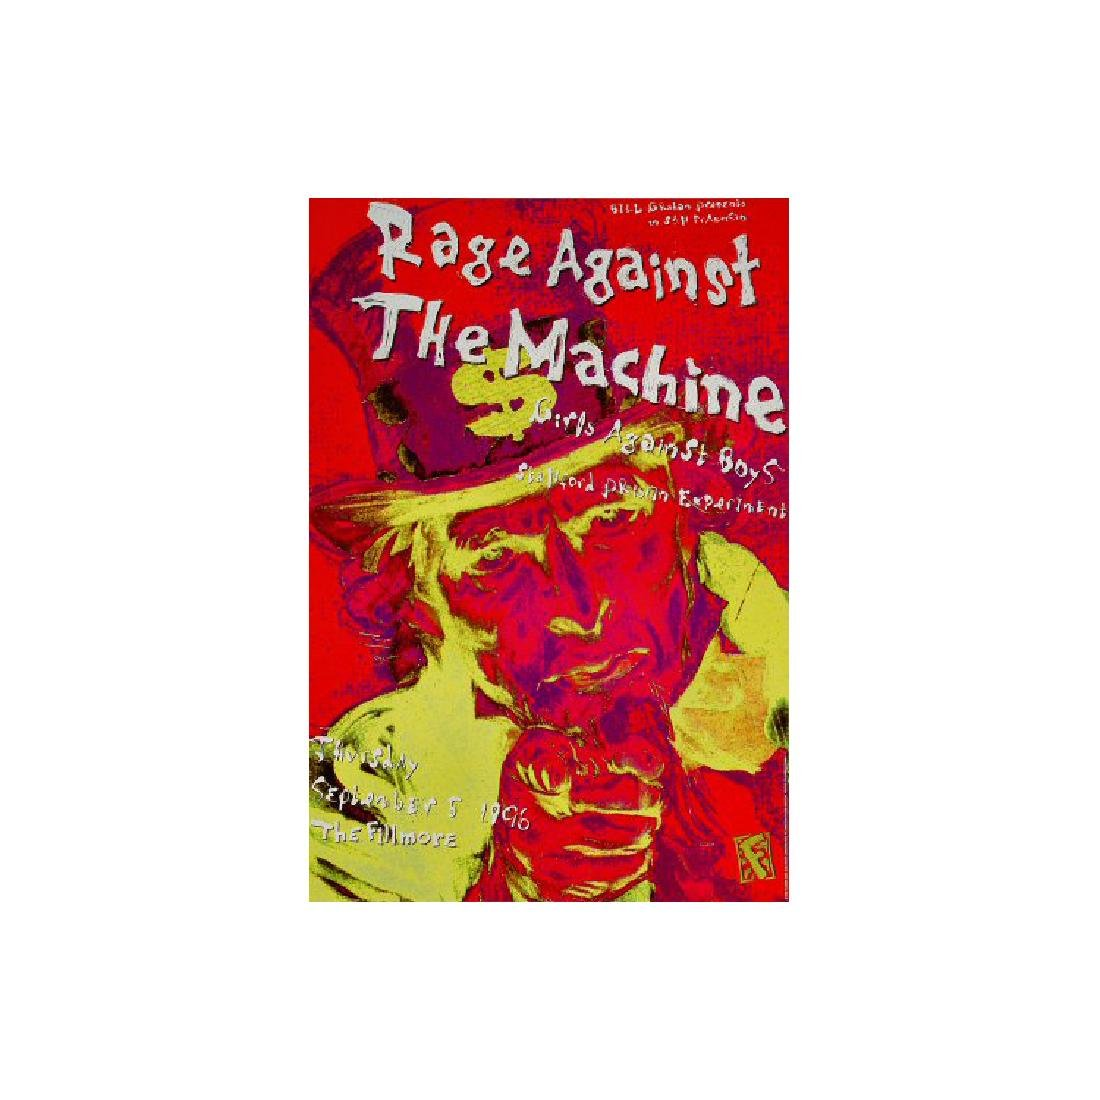 Rage Against the Machine - 1996 Concert Poster